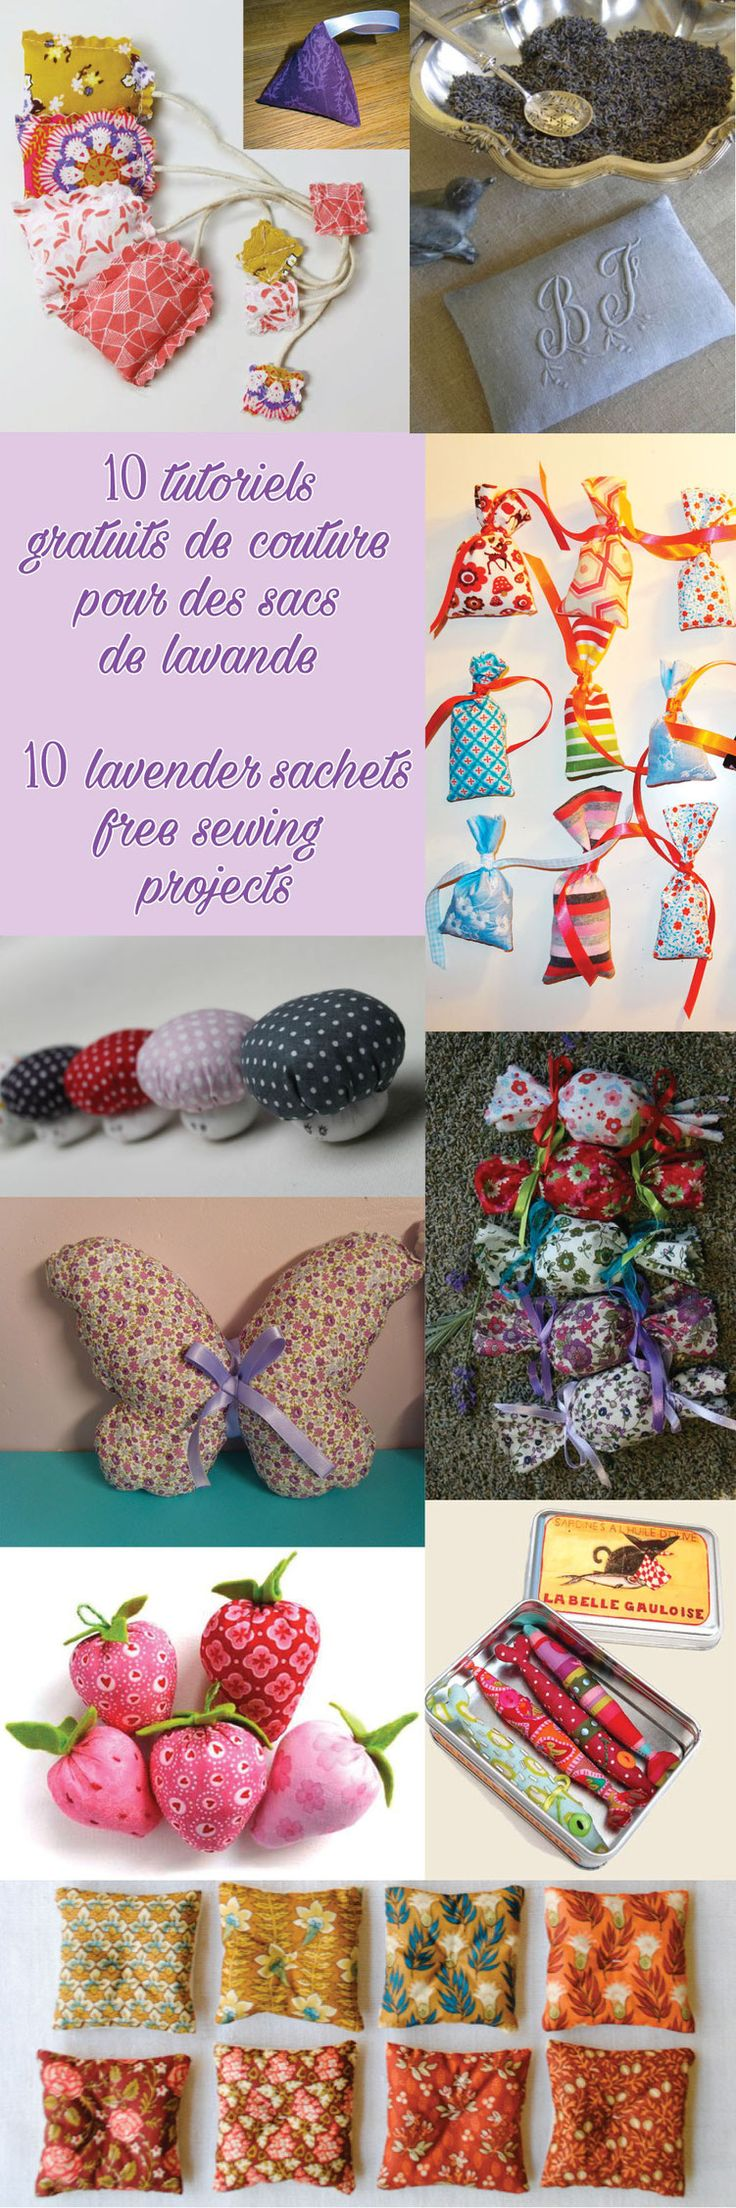 10 tutoriels gratuits de couture pour sacs de lavande - 10 lavender sachets free sewing projects - DIY - Tutorial - Patterns - ideas - BizzBizzHandMade